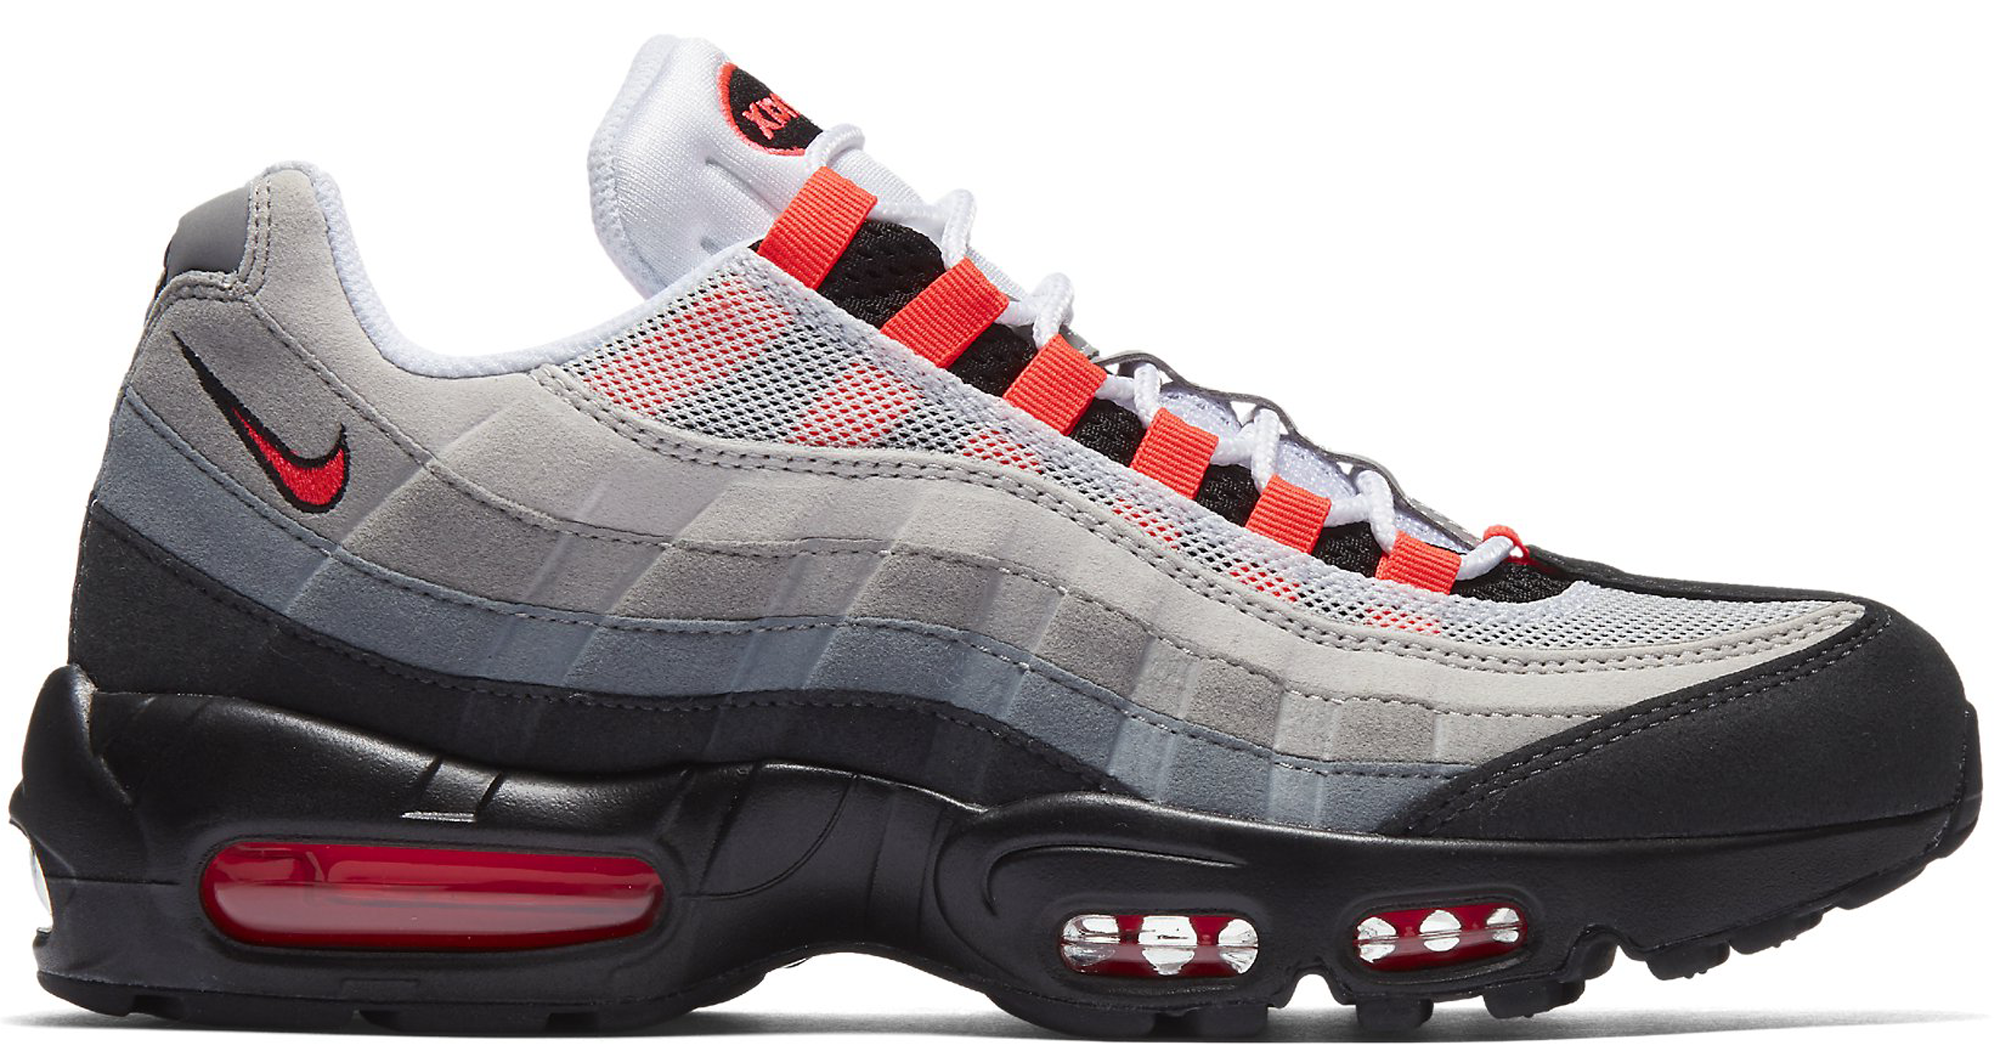 nike air max 95 solar red 2018 corvette